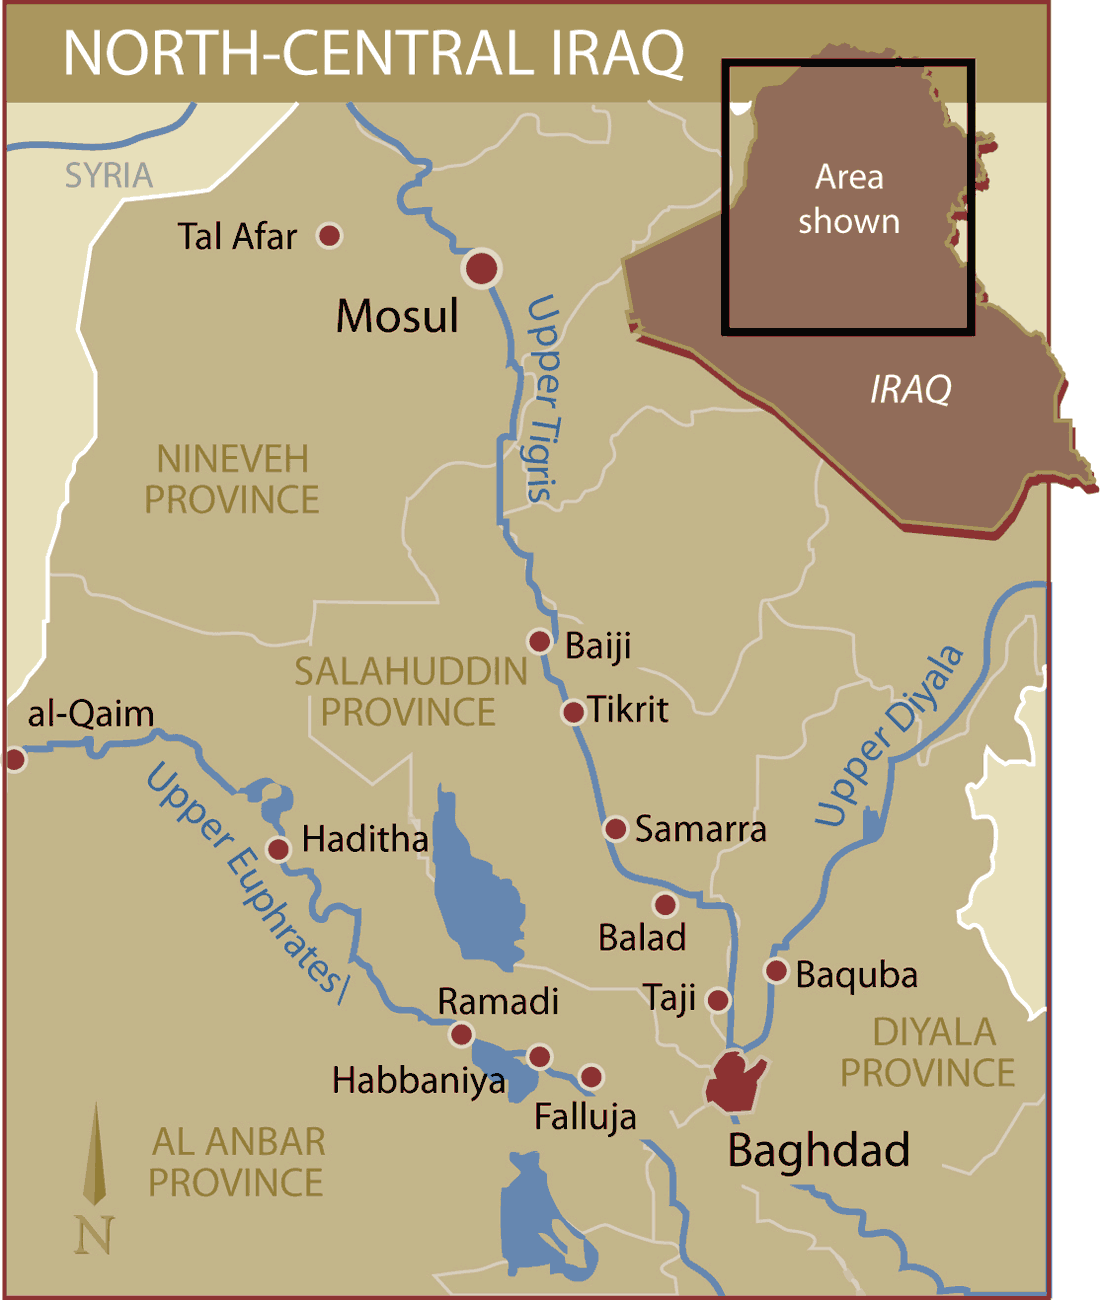 North Central Iraq large map